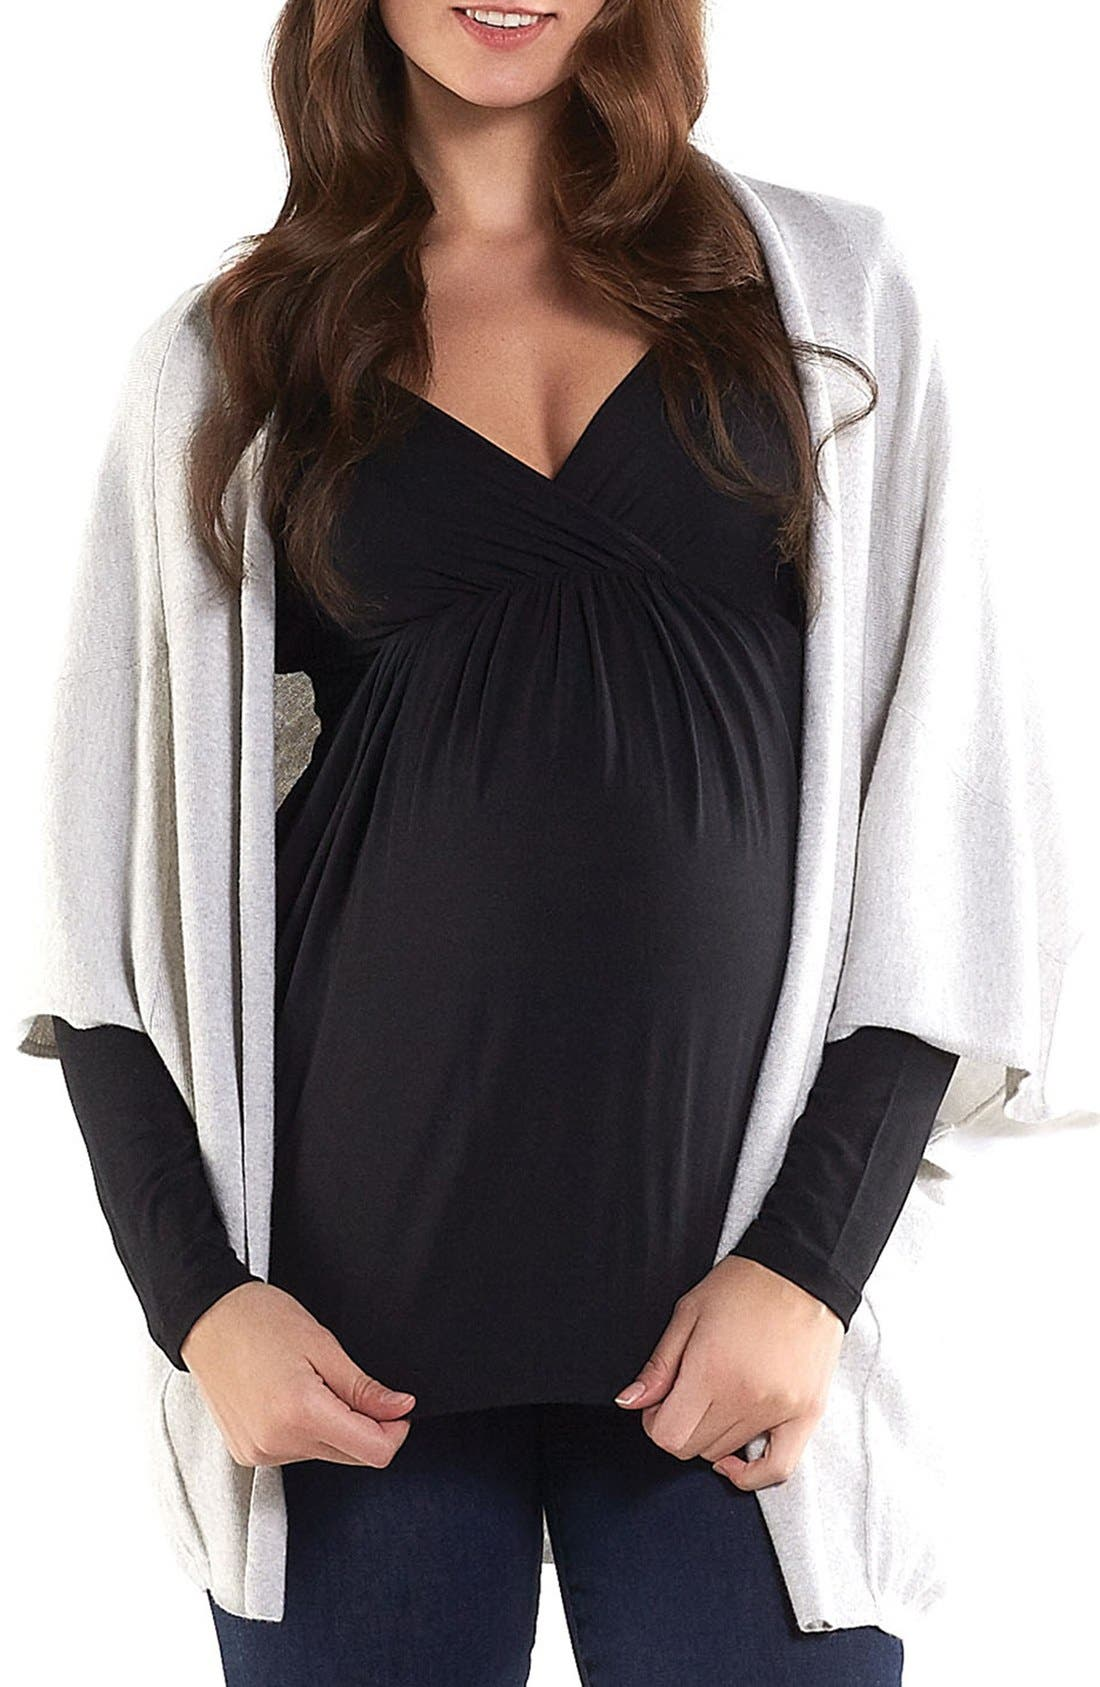 Tart Maternity 'Harlyn' Cotton & Cashmere Maternity Wrap Cardigan